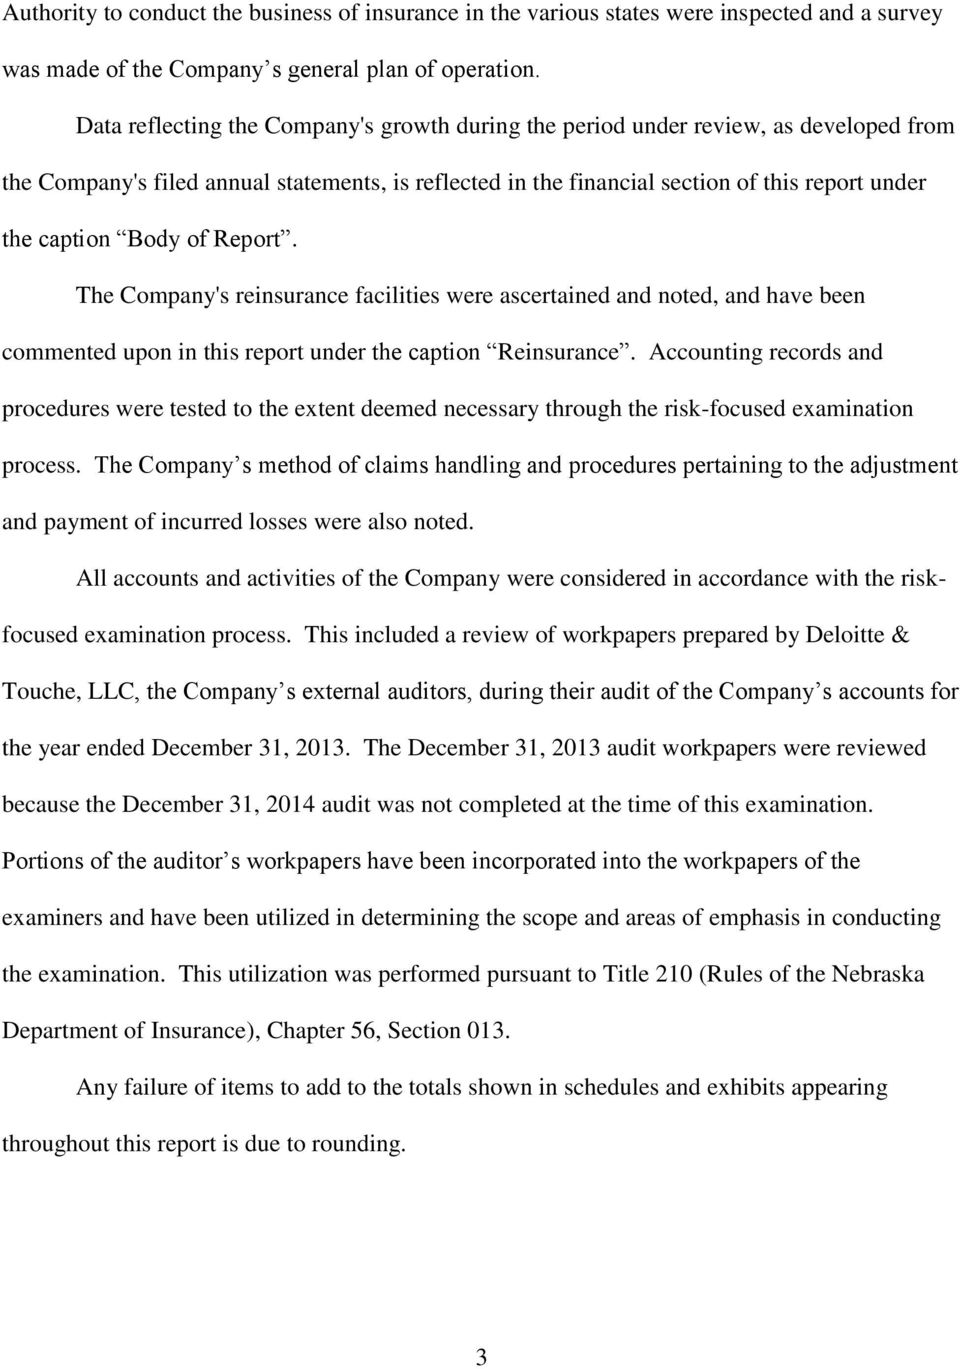 Body of Report. The Company's reinsurance facilities were ascertained and noted, and have been commented upon in this report under the caption Reinsurance.